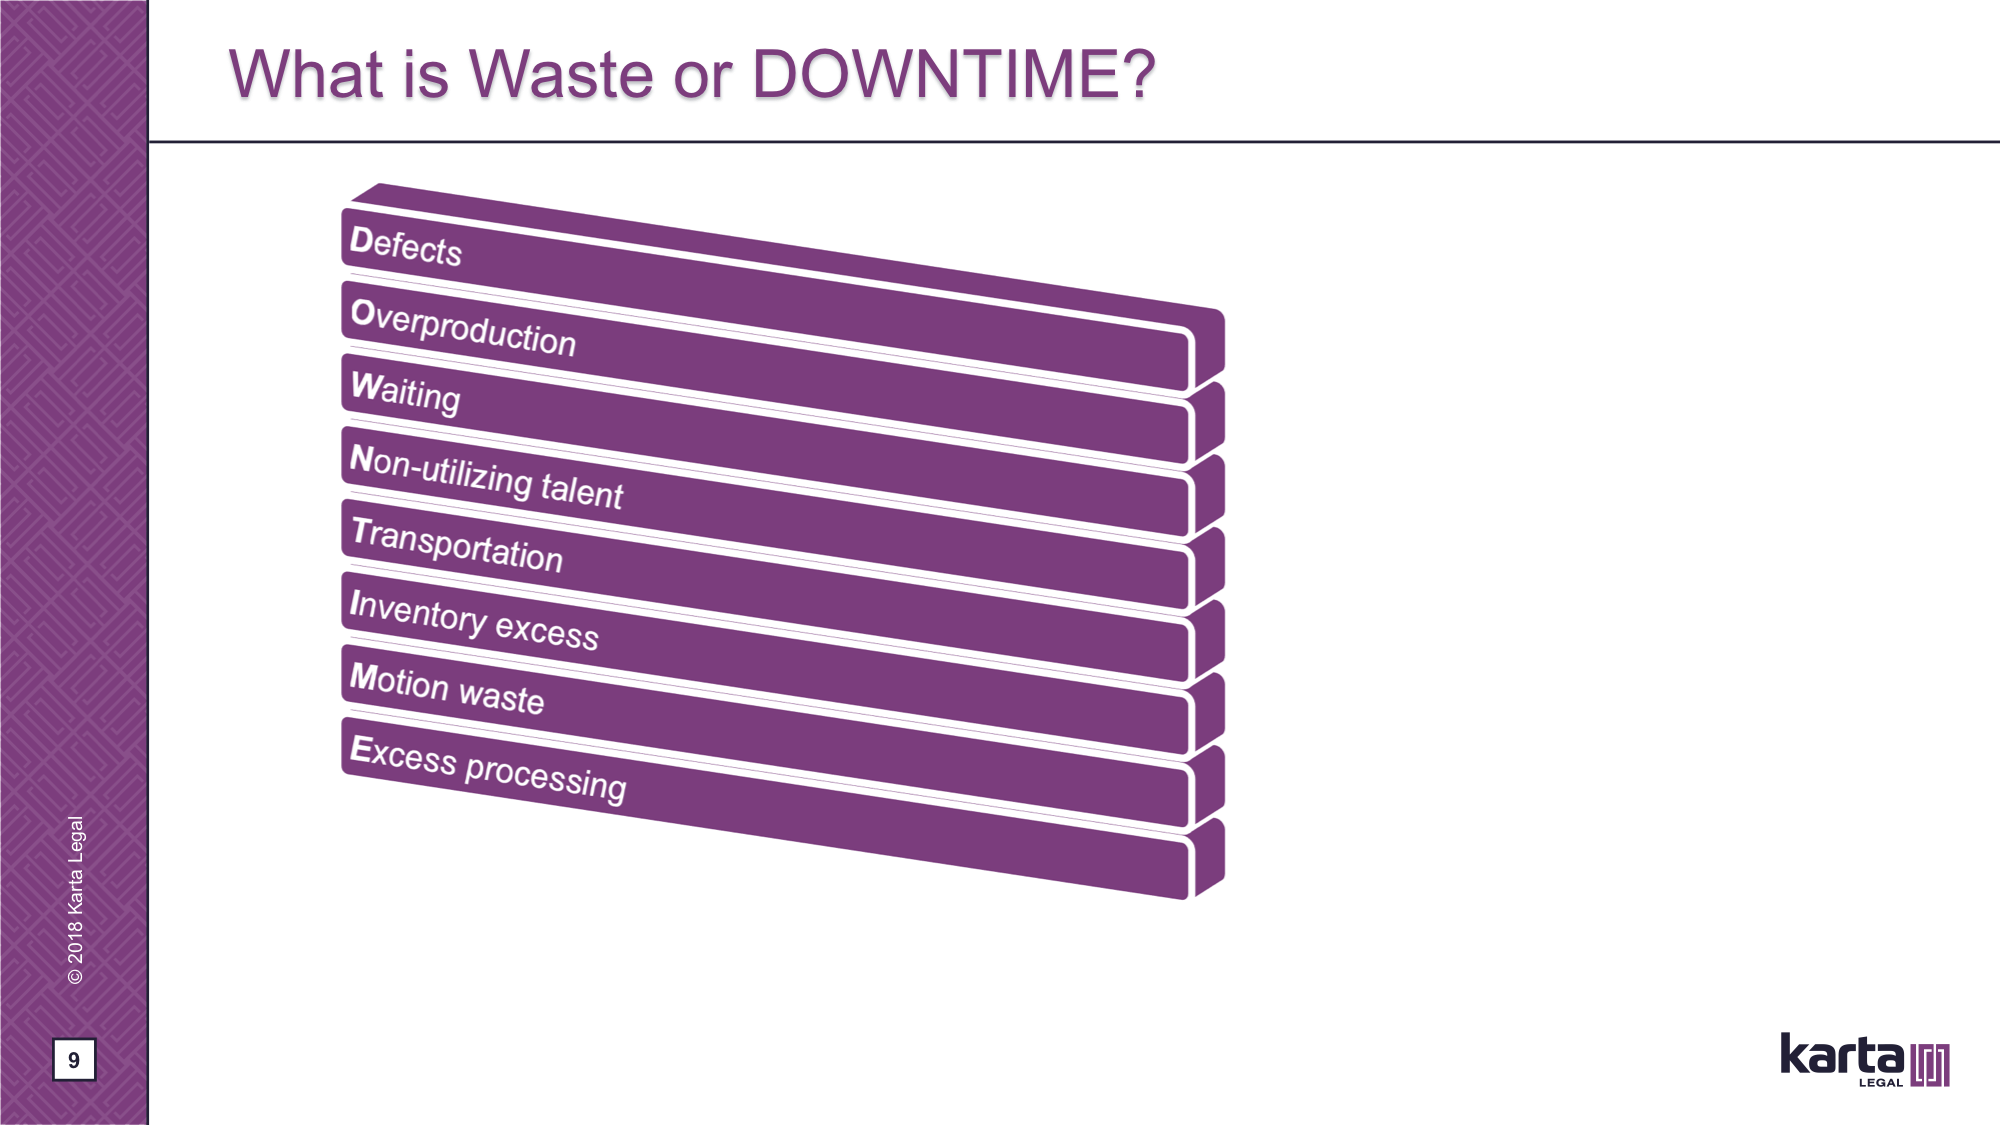 Waste or DOWNTIME